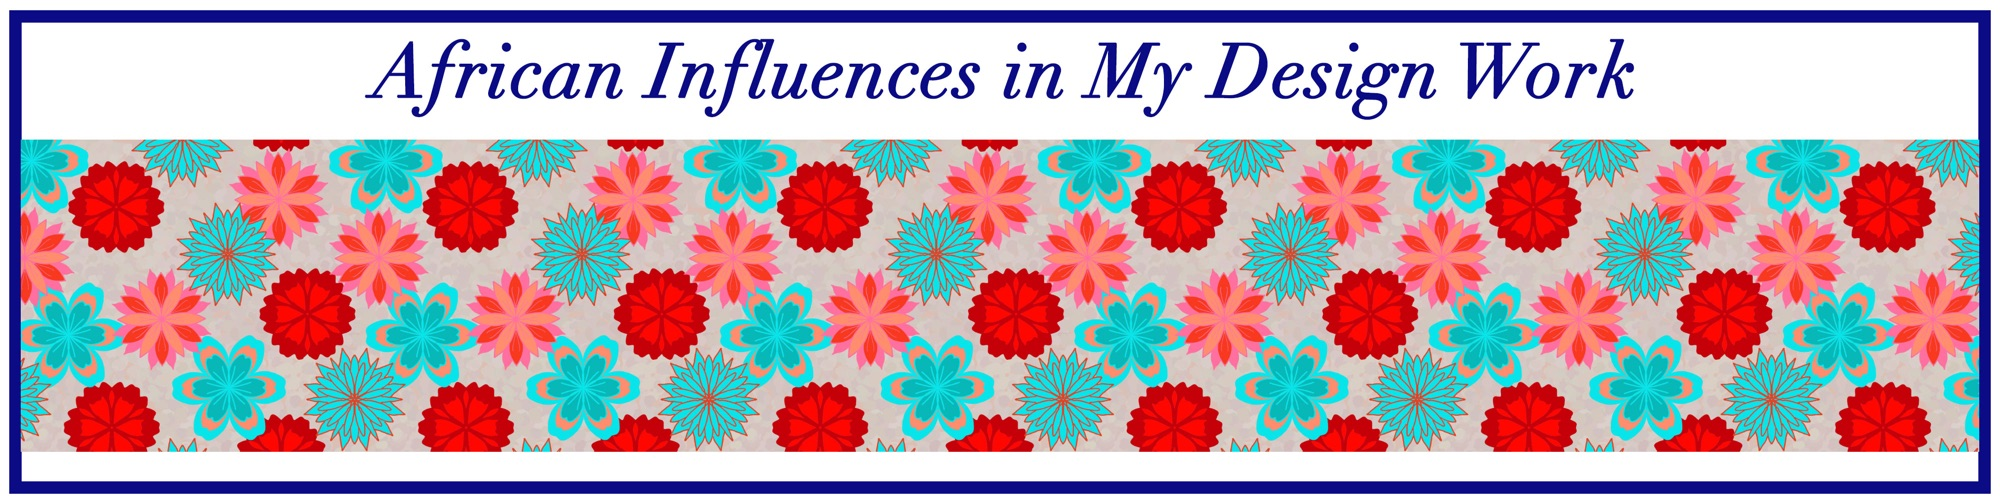 African-influences-in-my-design-work-blog-title